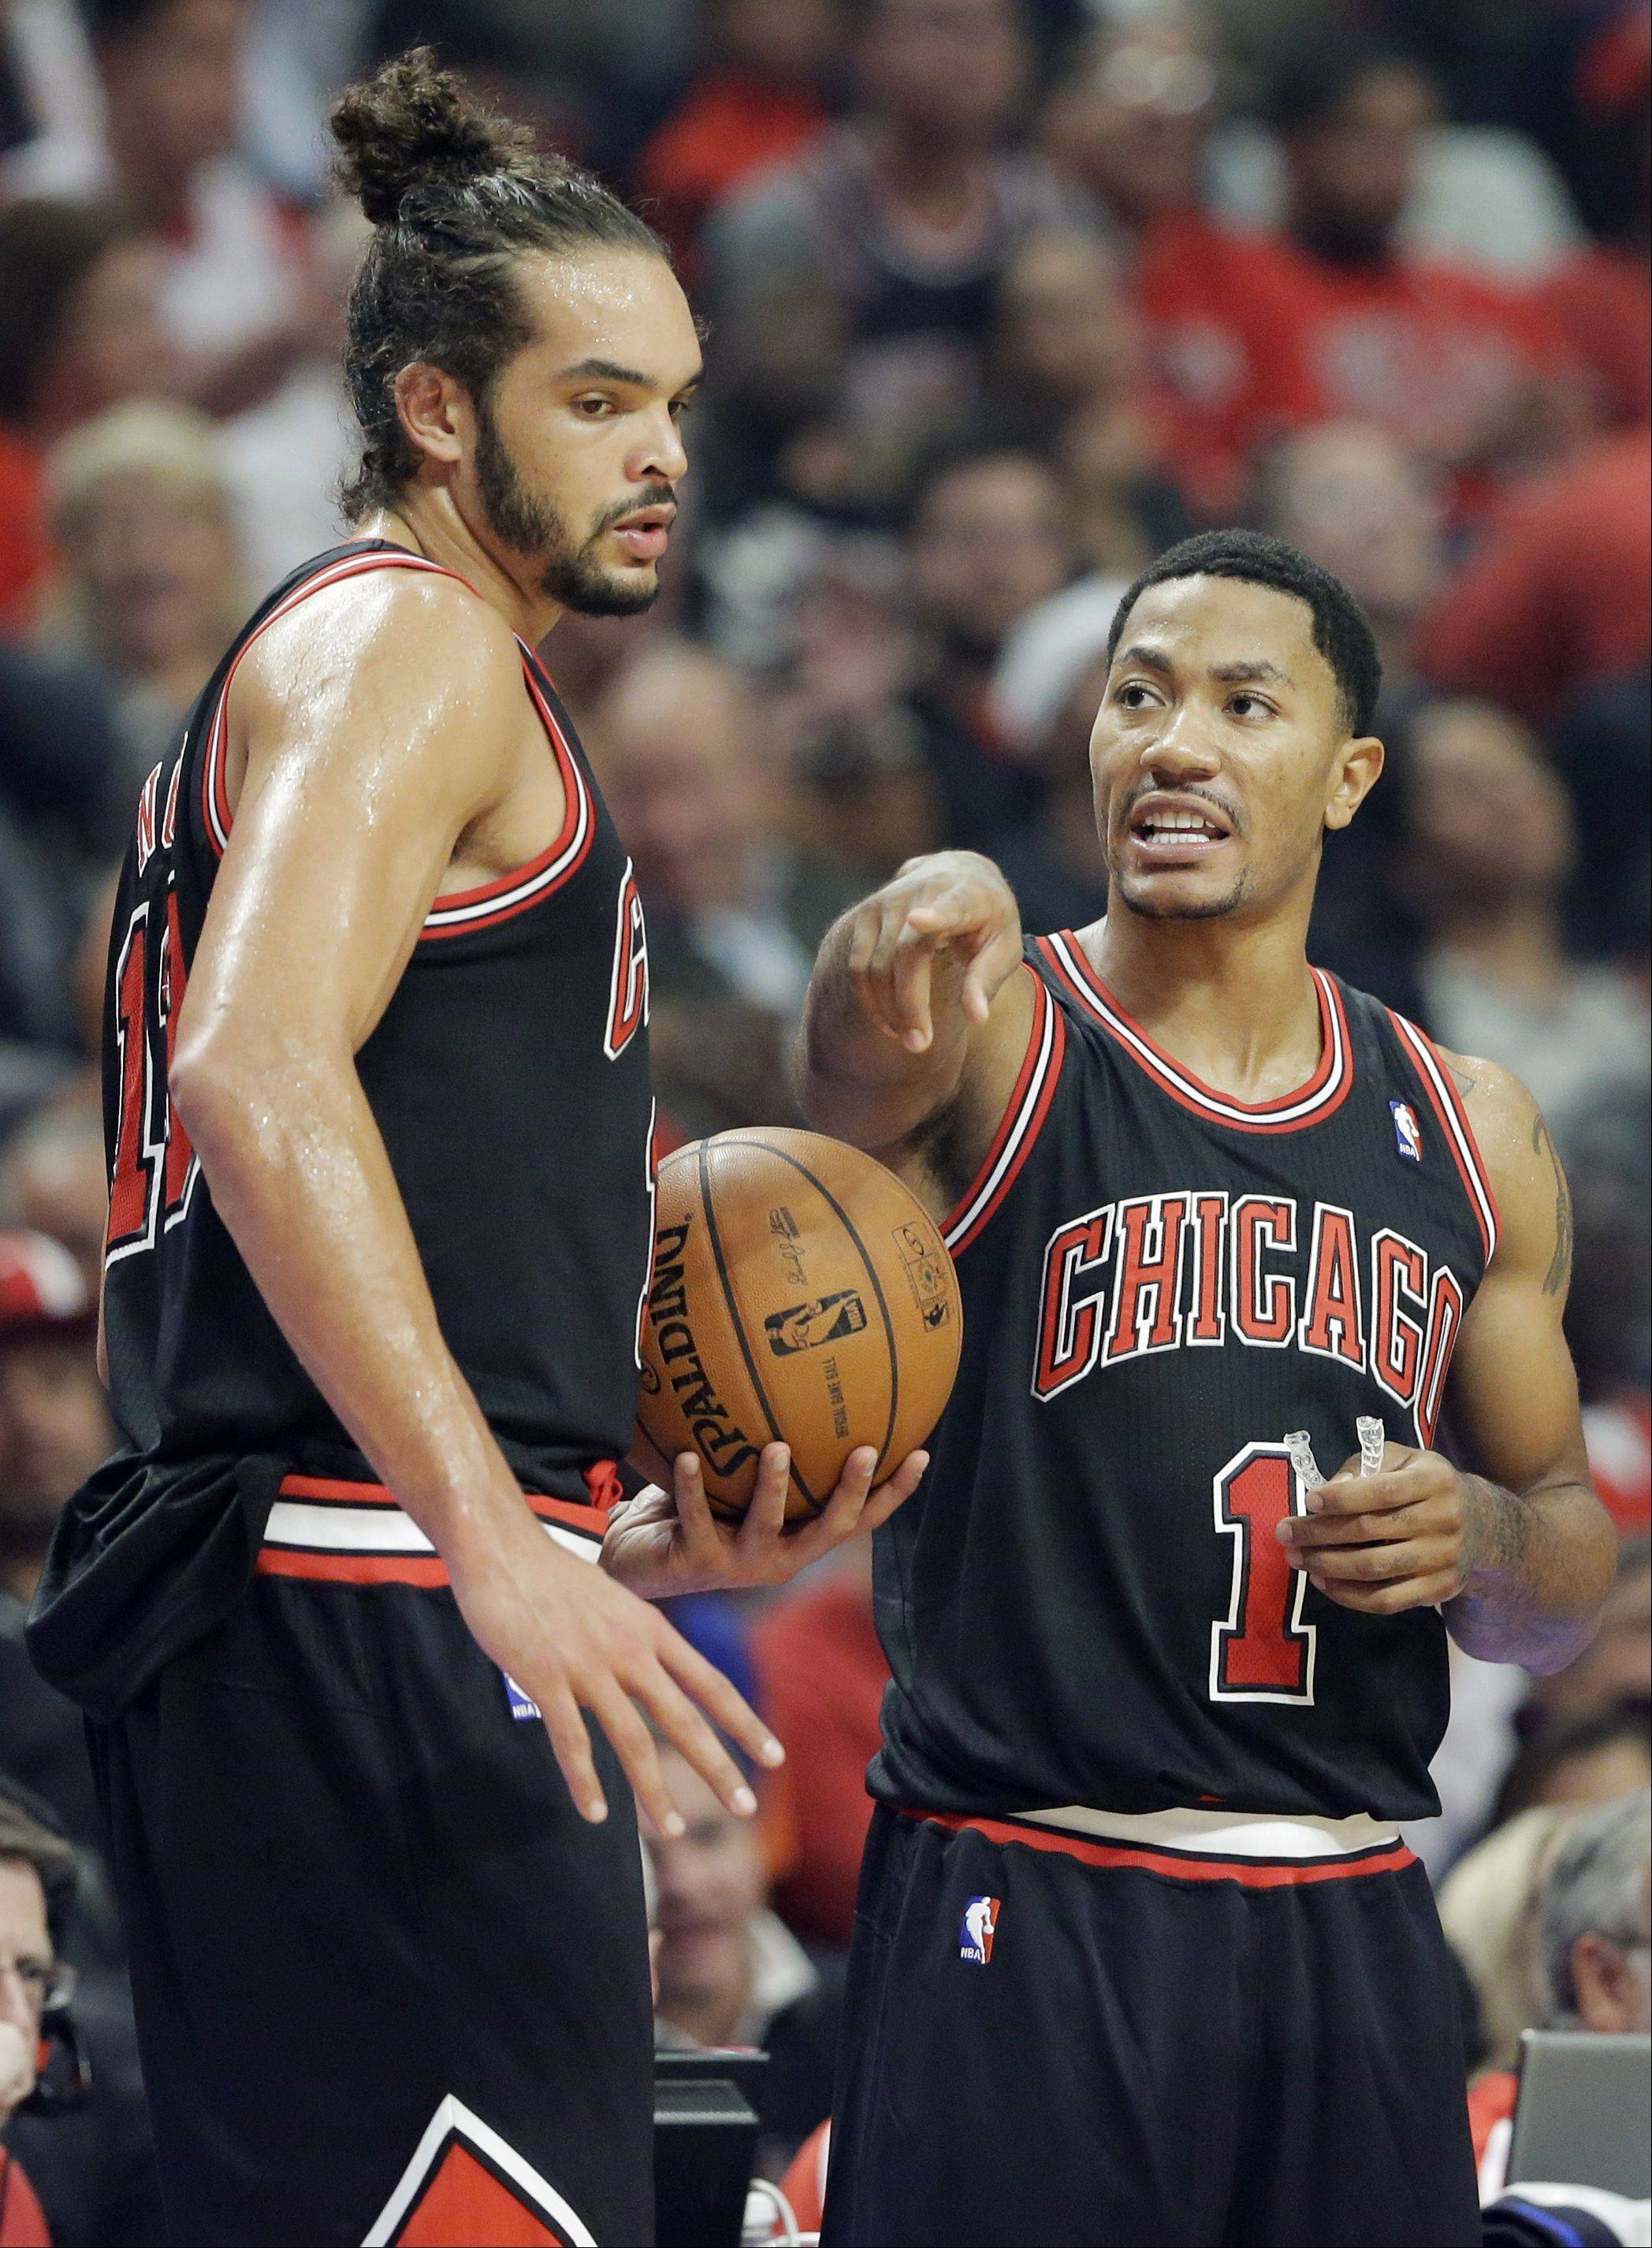 Chicago Bulls guard Derrick Rose, right, talks with center Joakim Noah during the first half of an NBA basketball game against the New York Knicks.